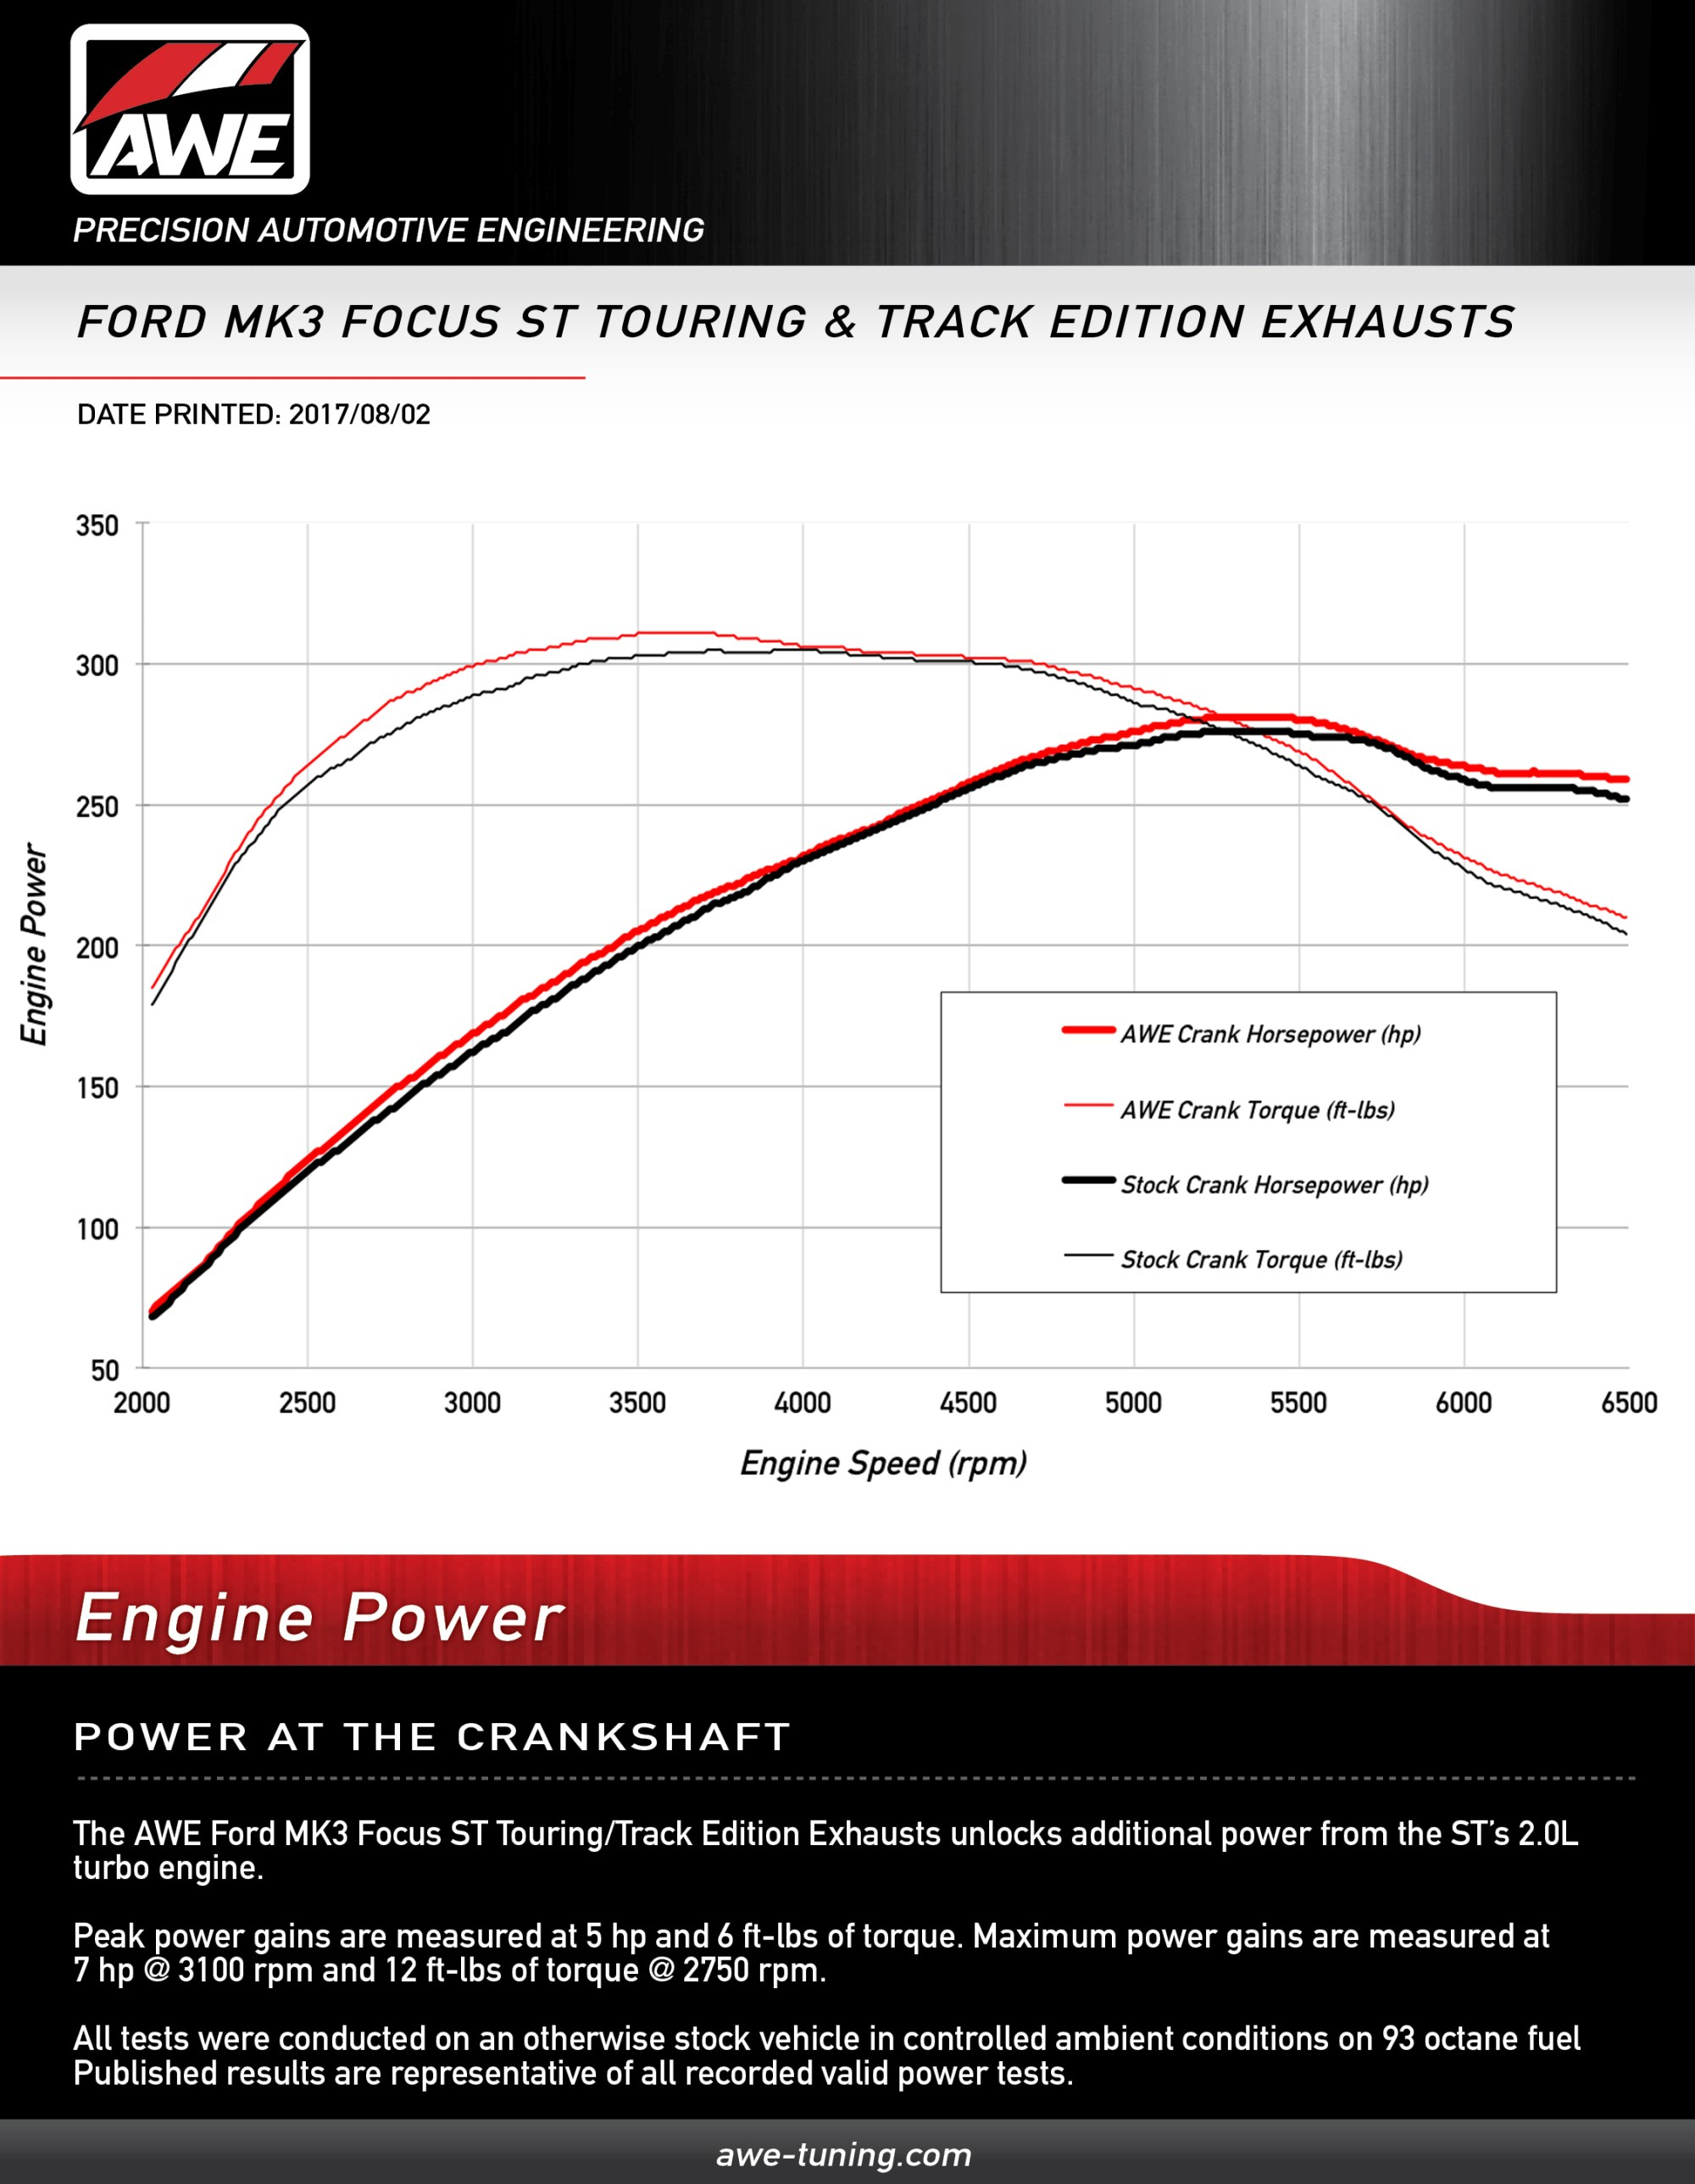 hight resolution of crank horsepower gains for the awe focus st track touring edition exhaust systems